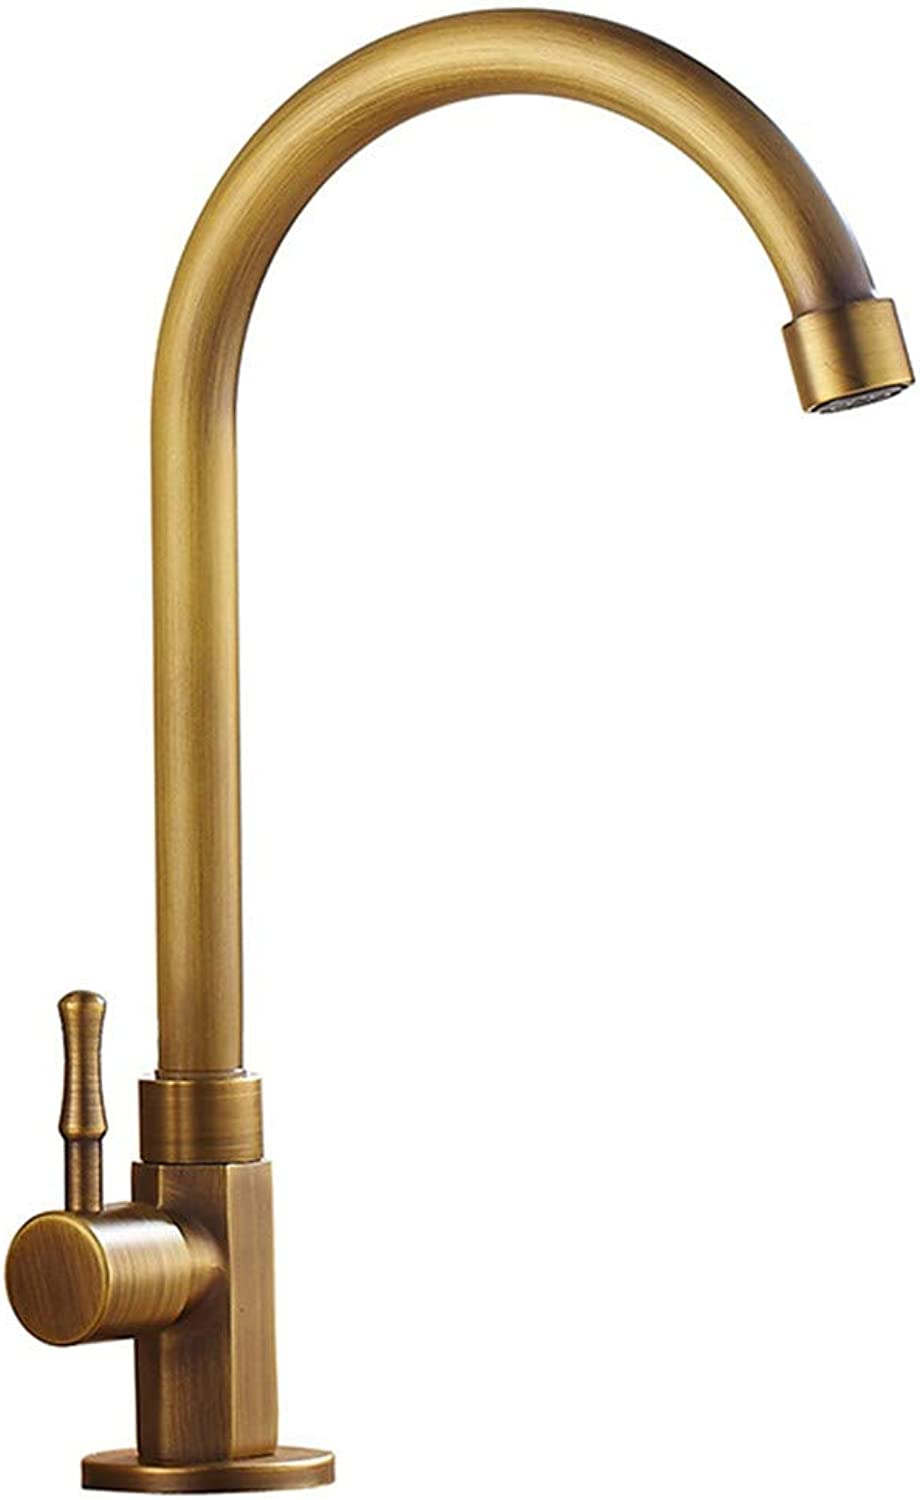 Hlluya Professional Sink Mixer Tap Kitchen Faucet The copper tower single cold basin faucet redary antique faucet antique basin sinks faucets, taps separately.